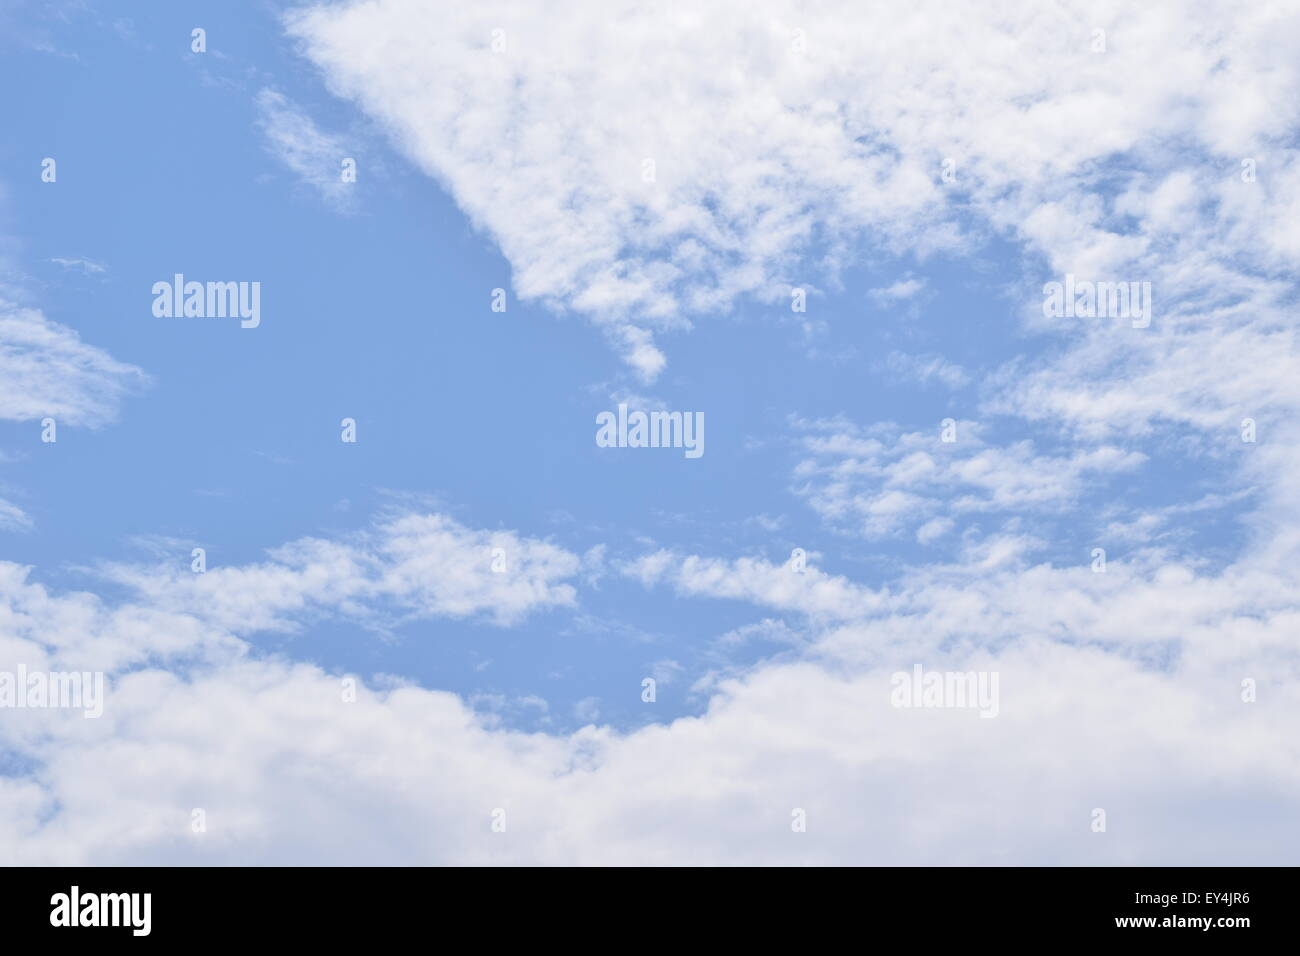 ordinary blue sky with some white clouds - Stock Image